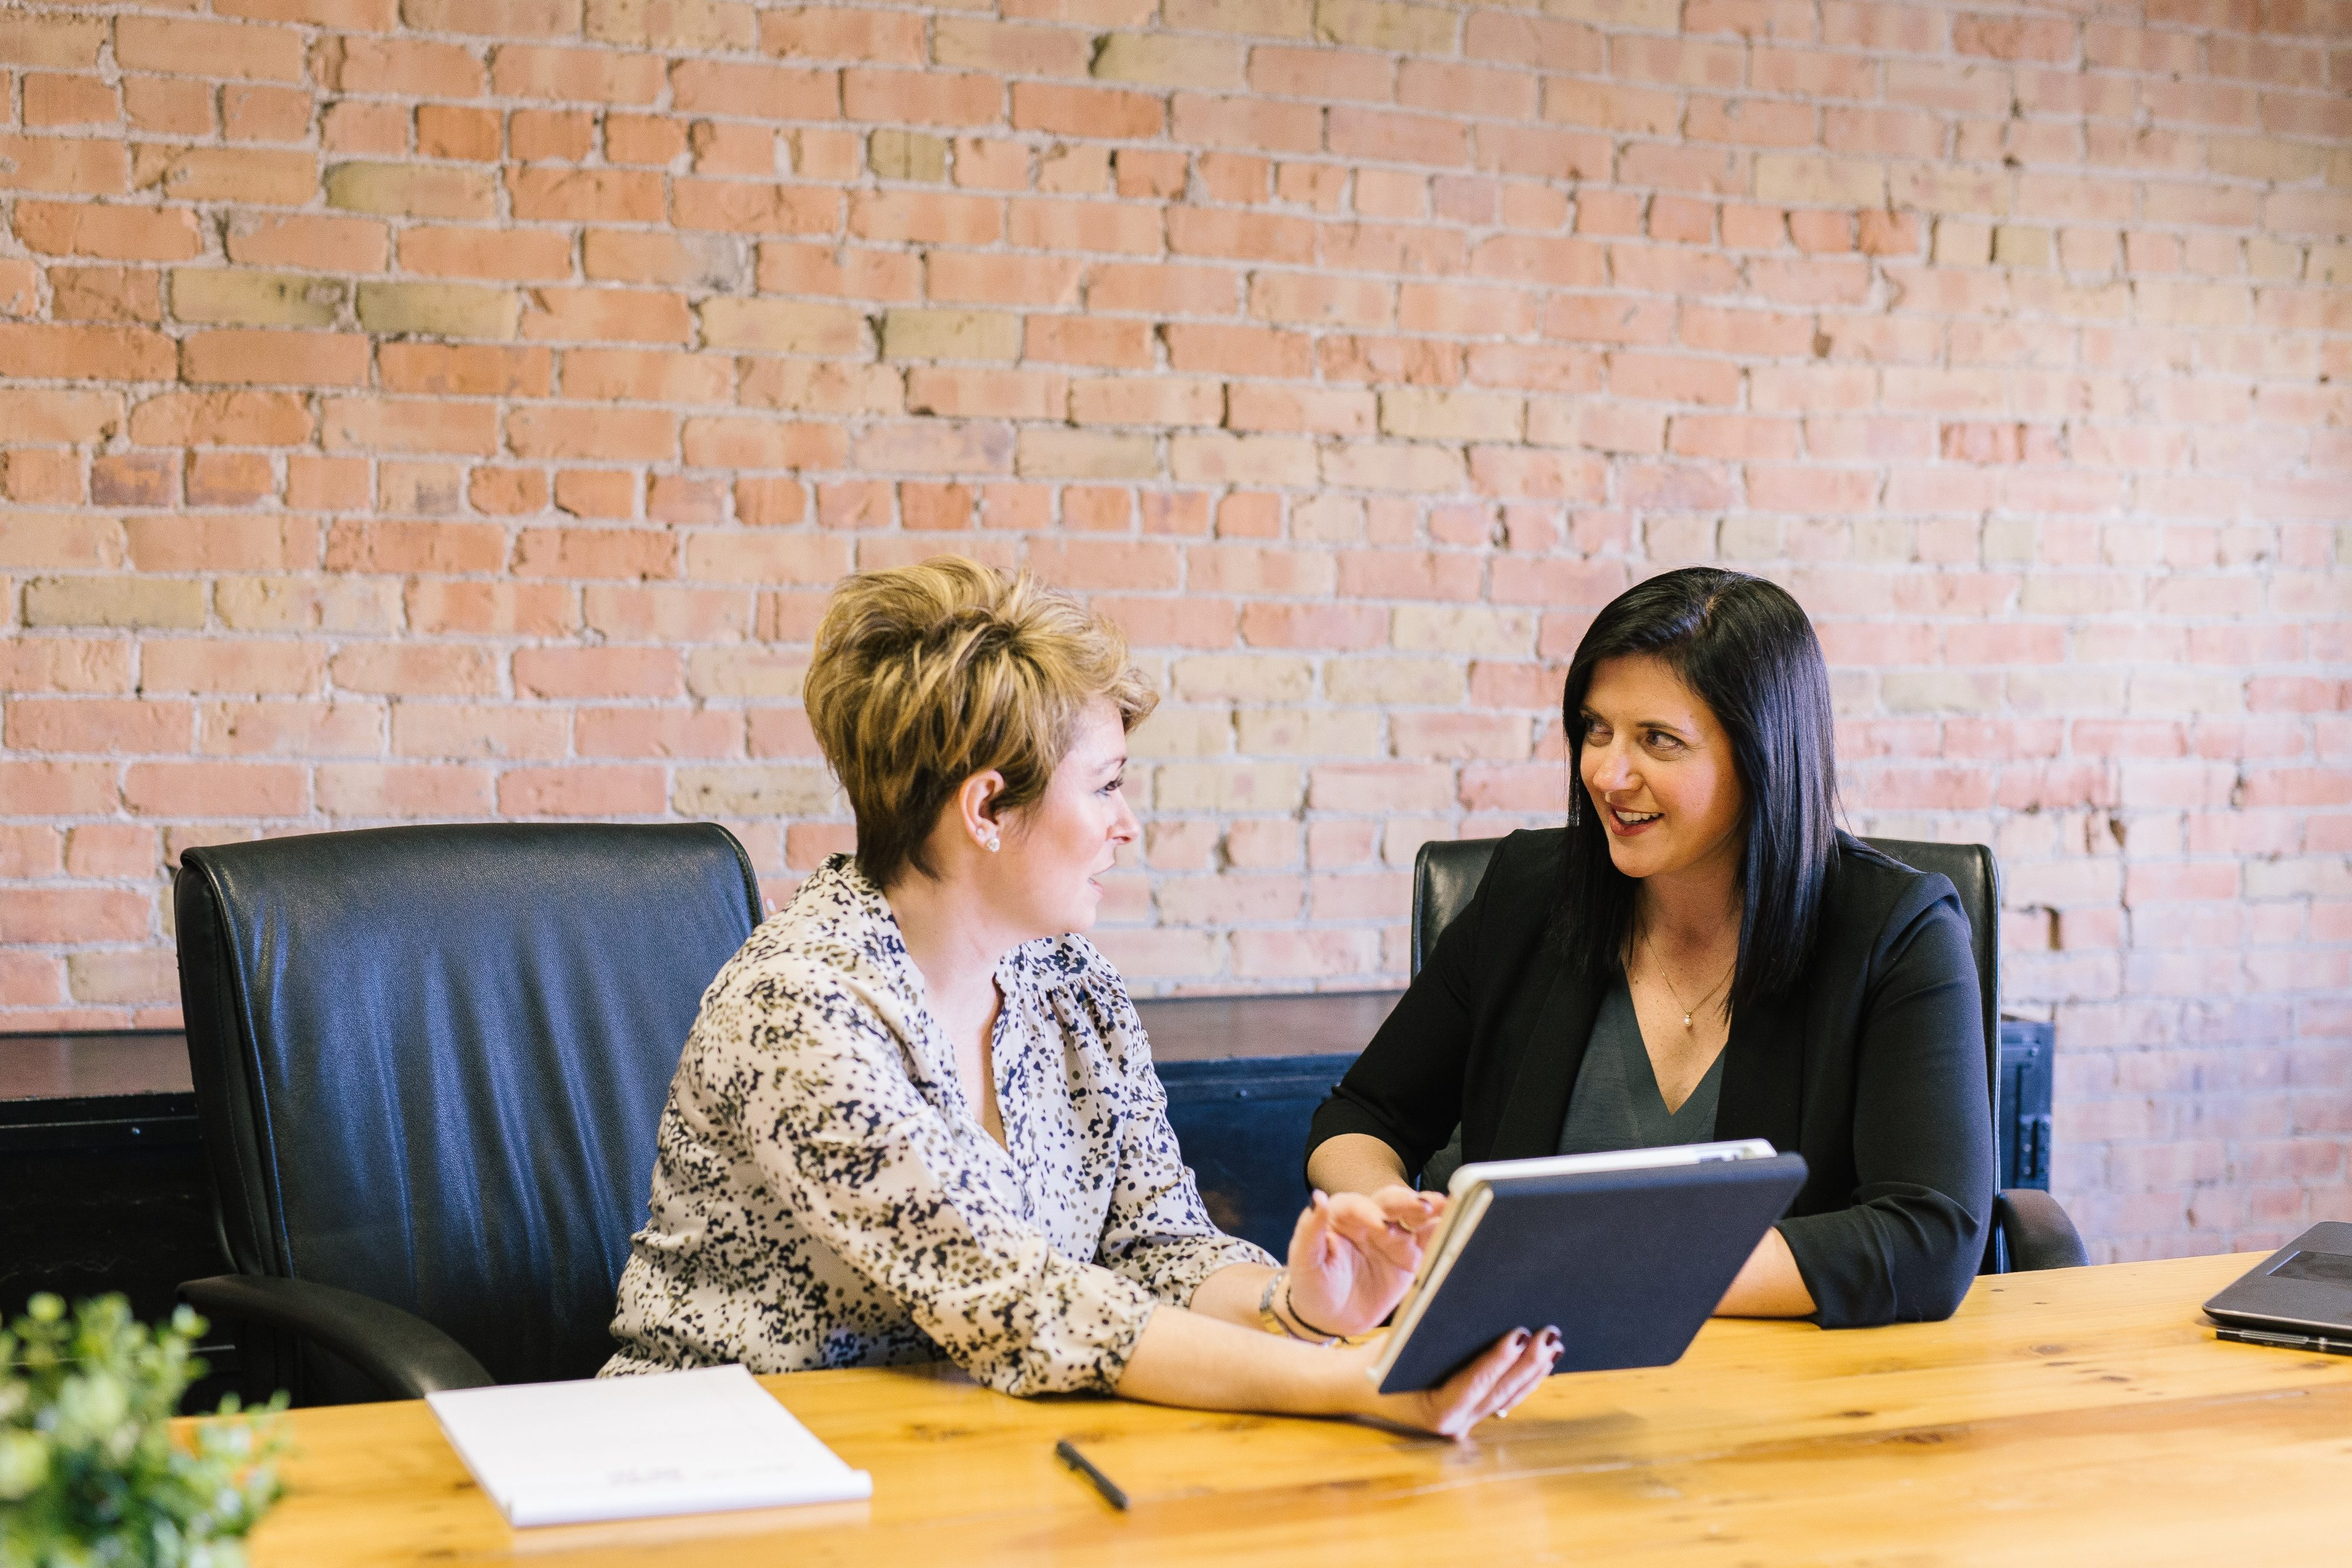 Image of two women sitting in an office in discussion